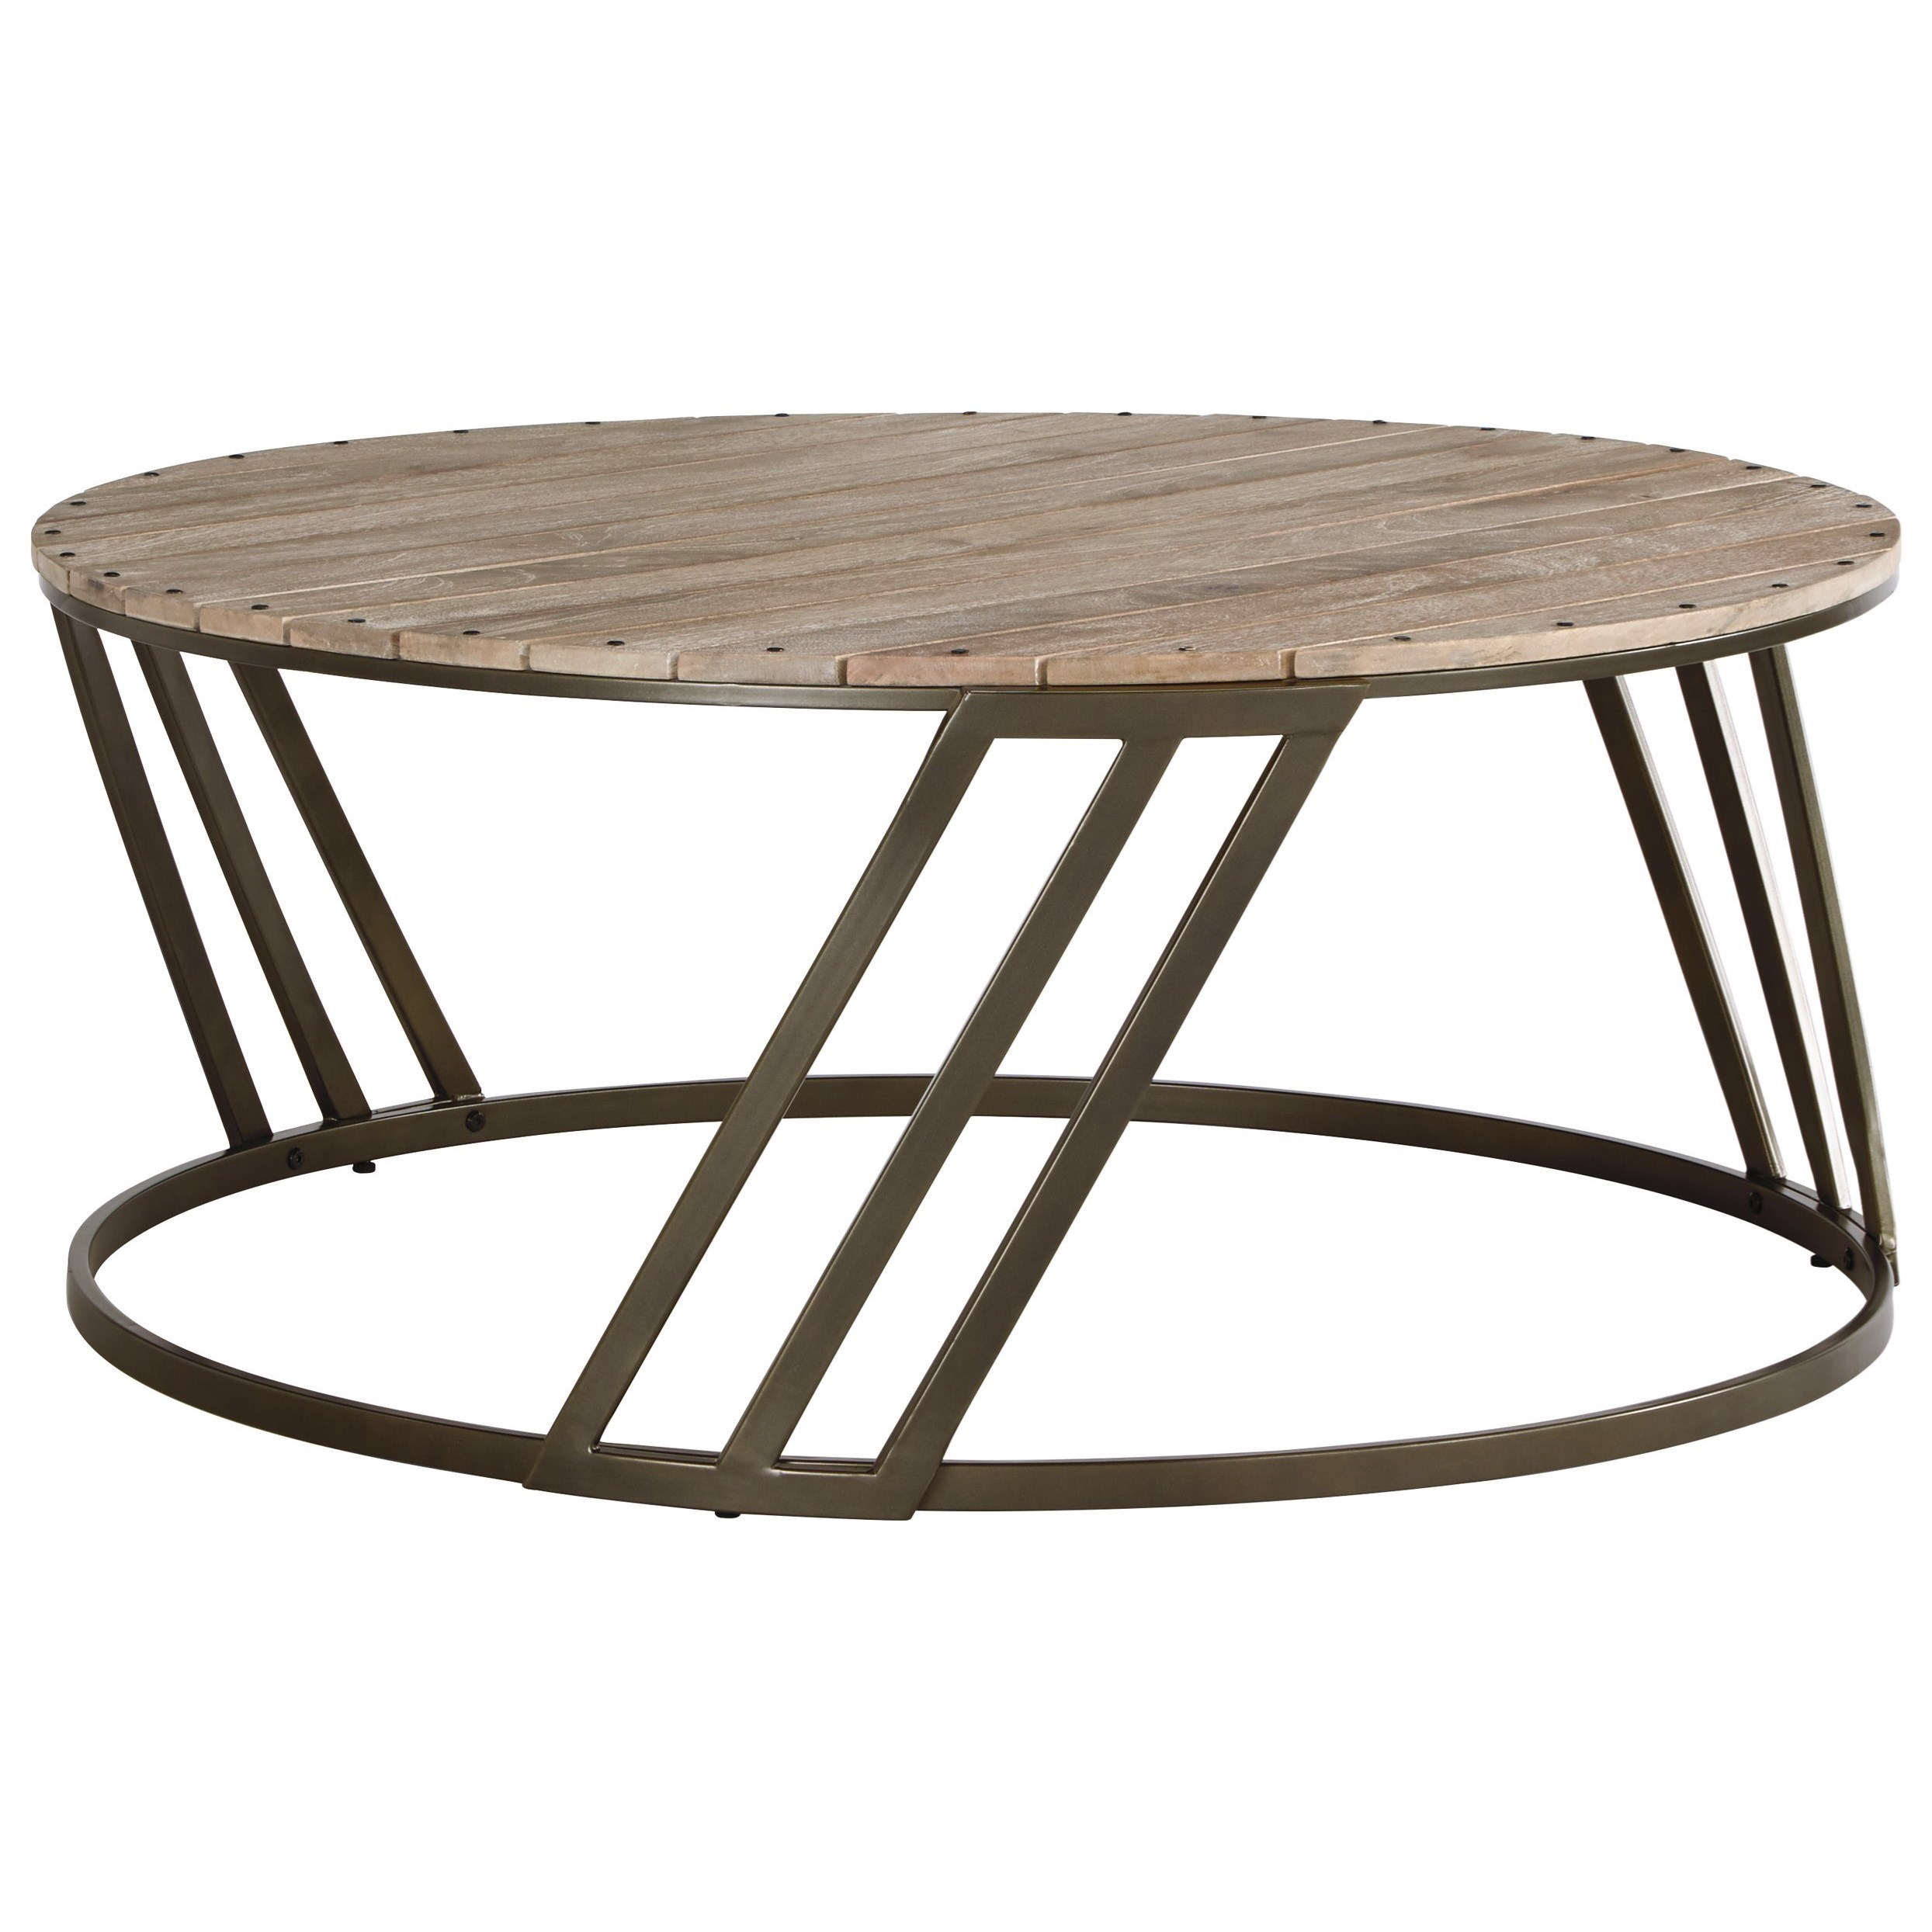 Relaxed Vintage Round Cocktail Table with Plank Top by Signature